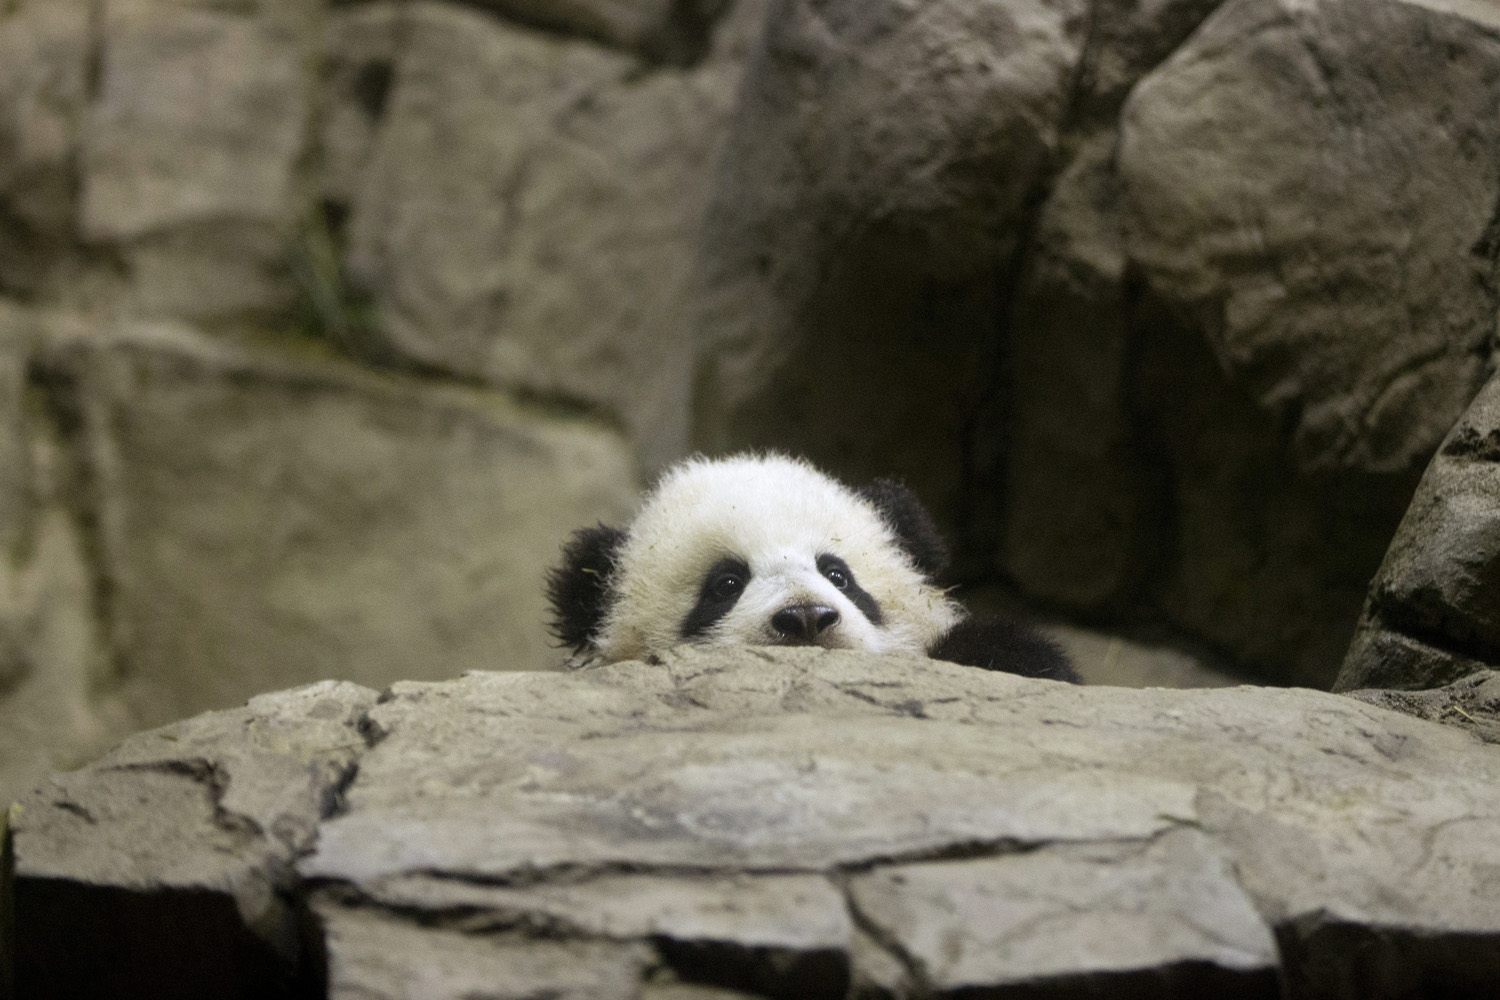 Jan. 6, 2014. Bao Bao, the four and a half month old giant panda, makes her public debut at an indoor habitat at the National Zoo in Washington.